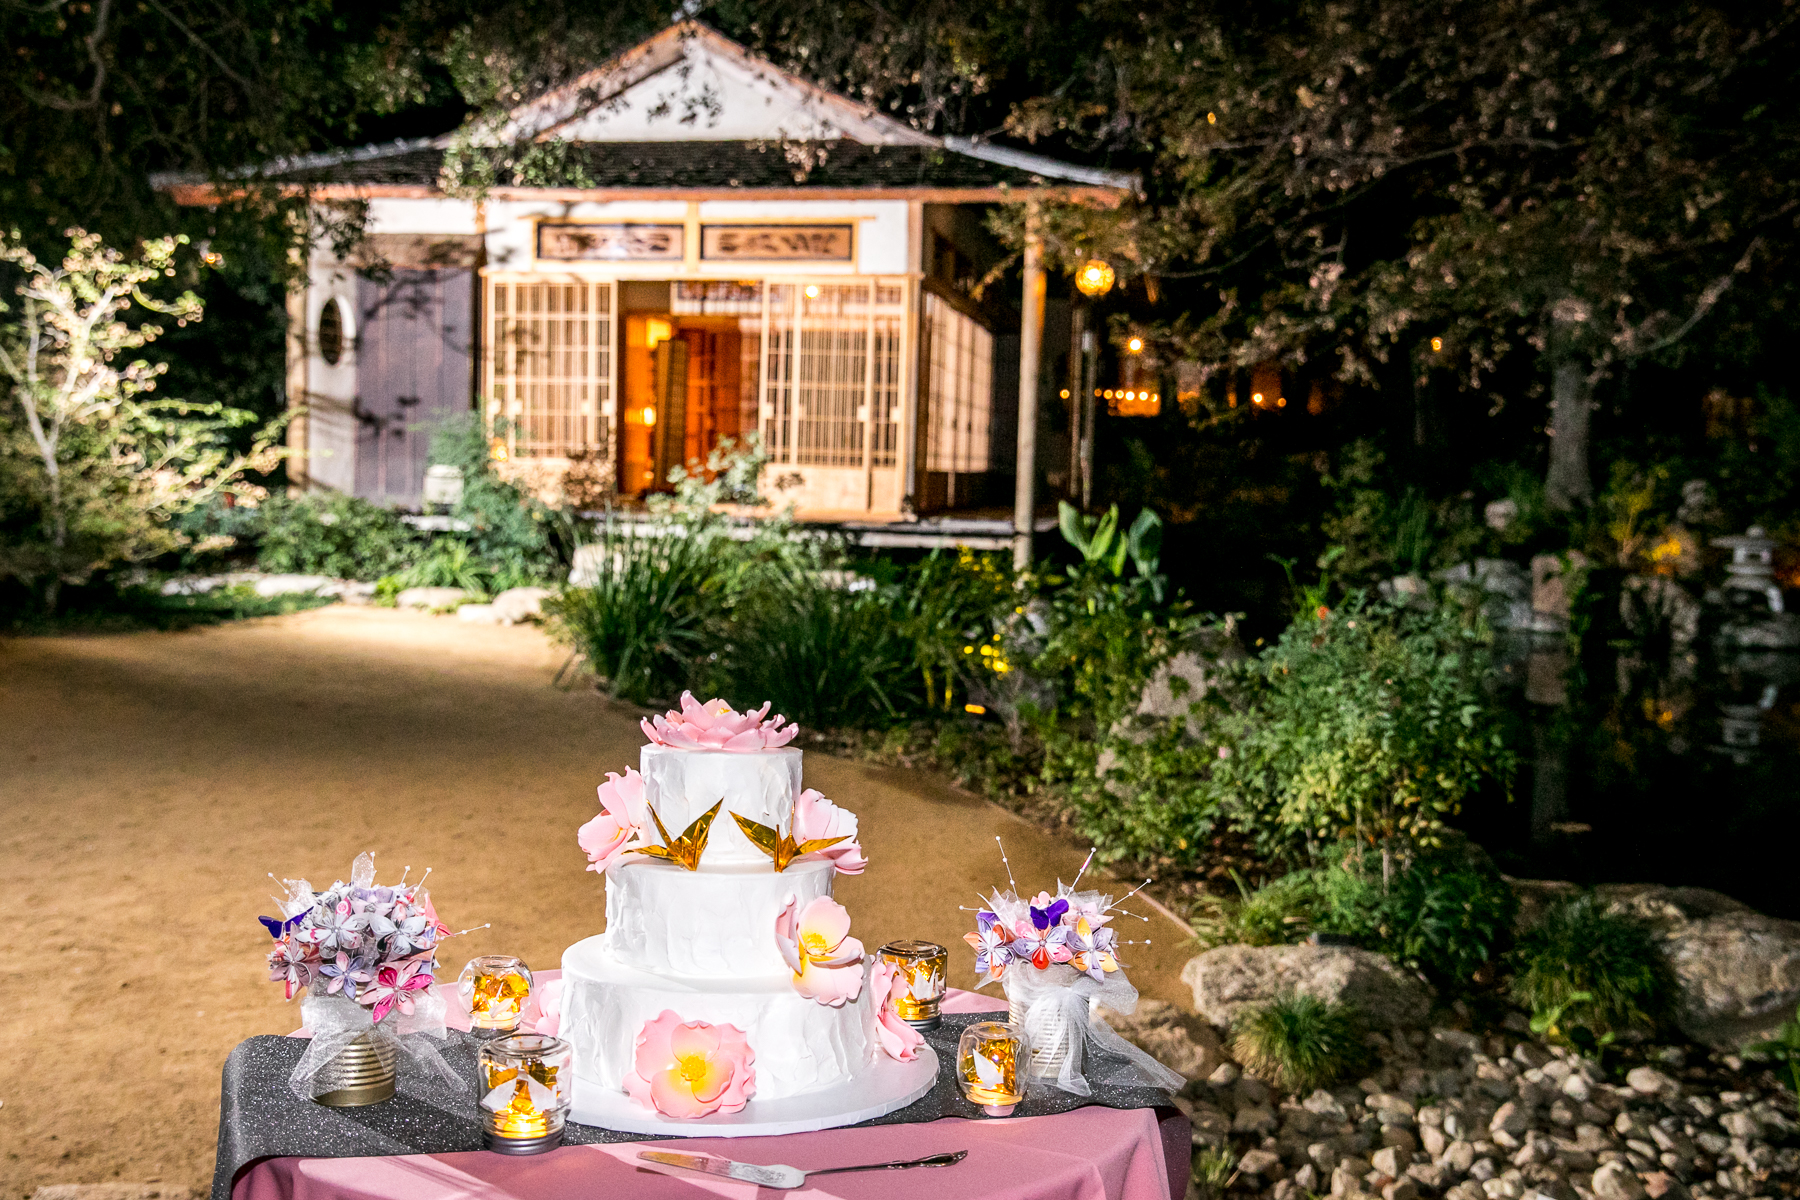 beautiful backdrop for the wedding cake at storrier stearns wedding photographer